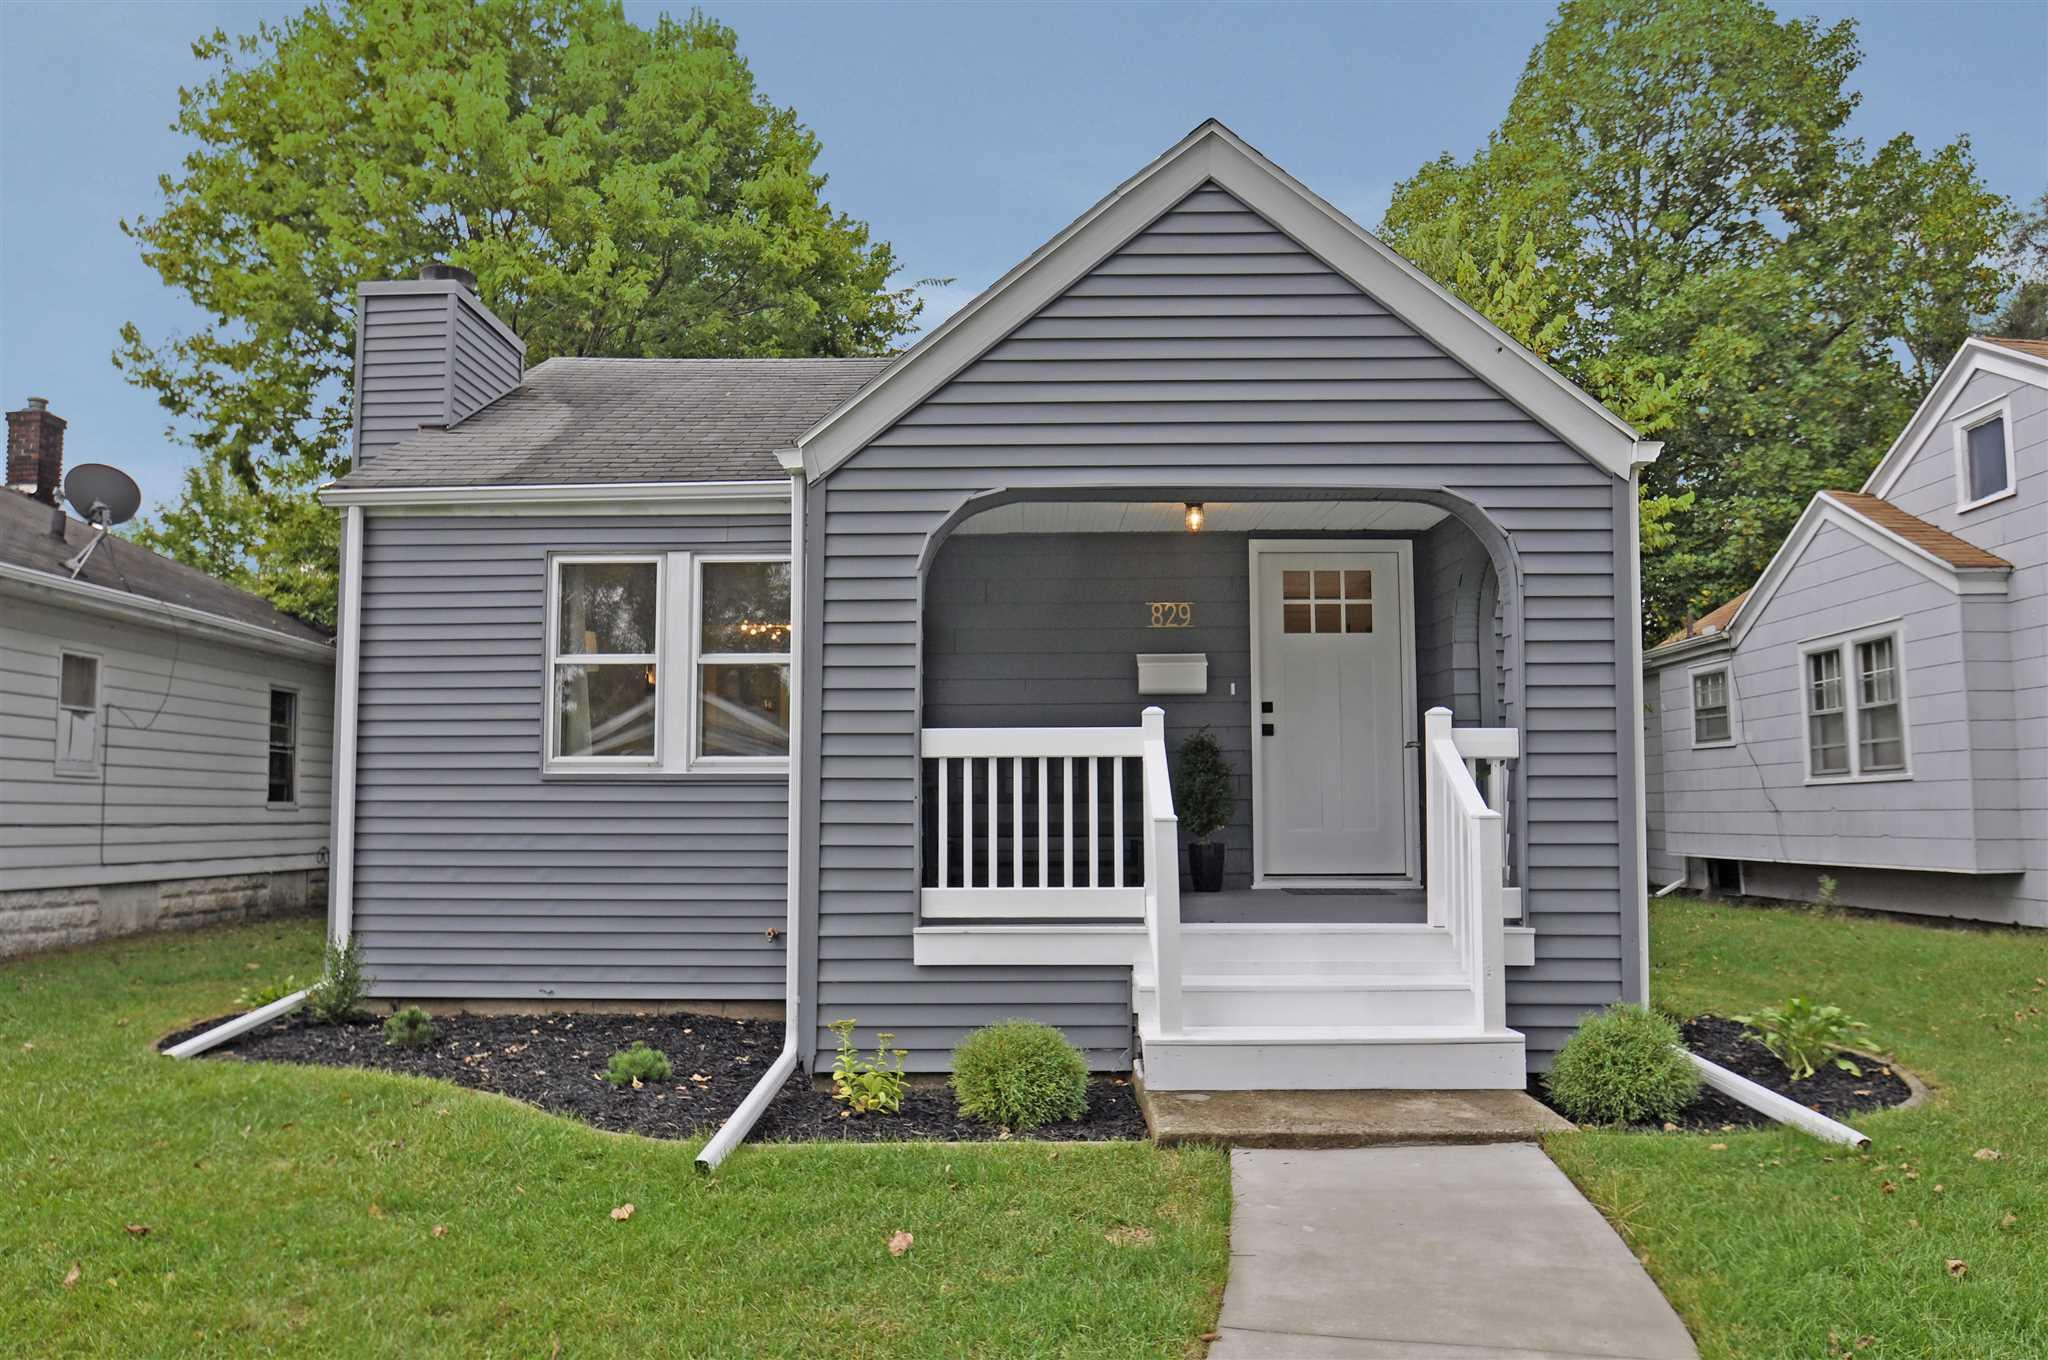 829 S 35TH South Bend, IN 46615